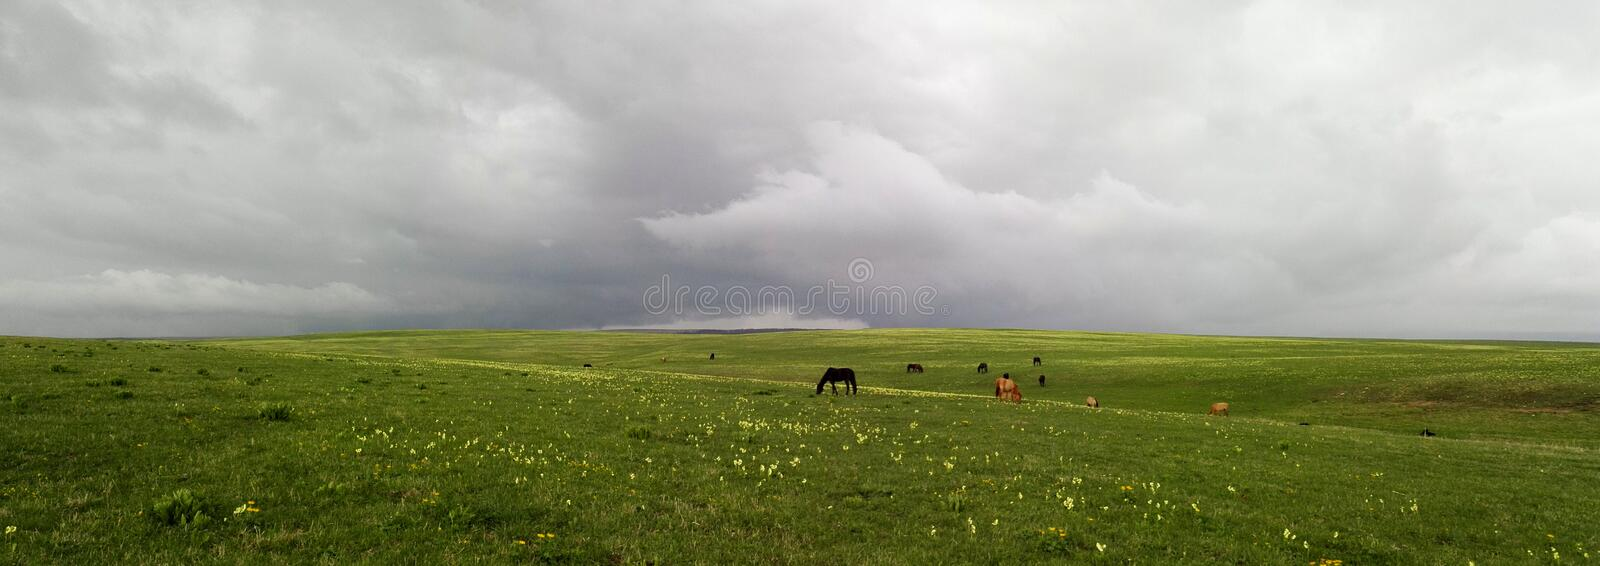 Horses graze in a meadow on a cloudy day royalty free stock photography